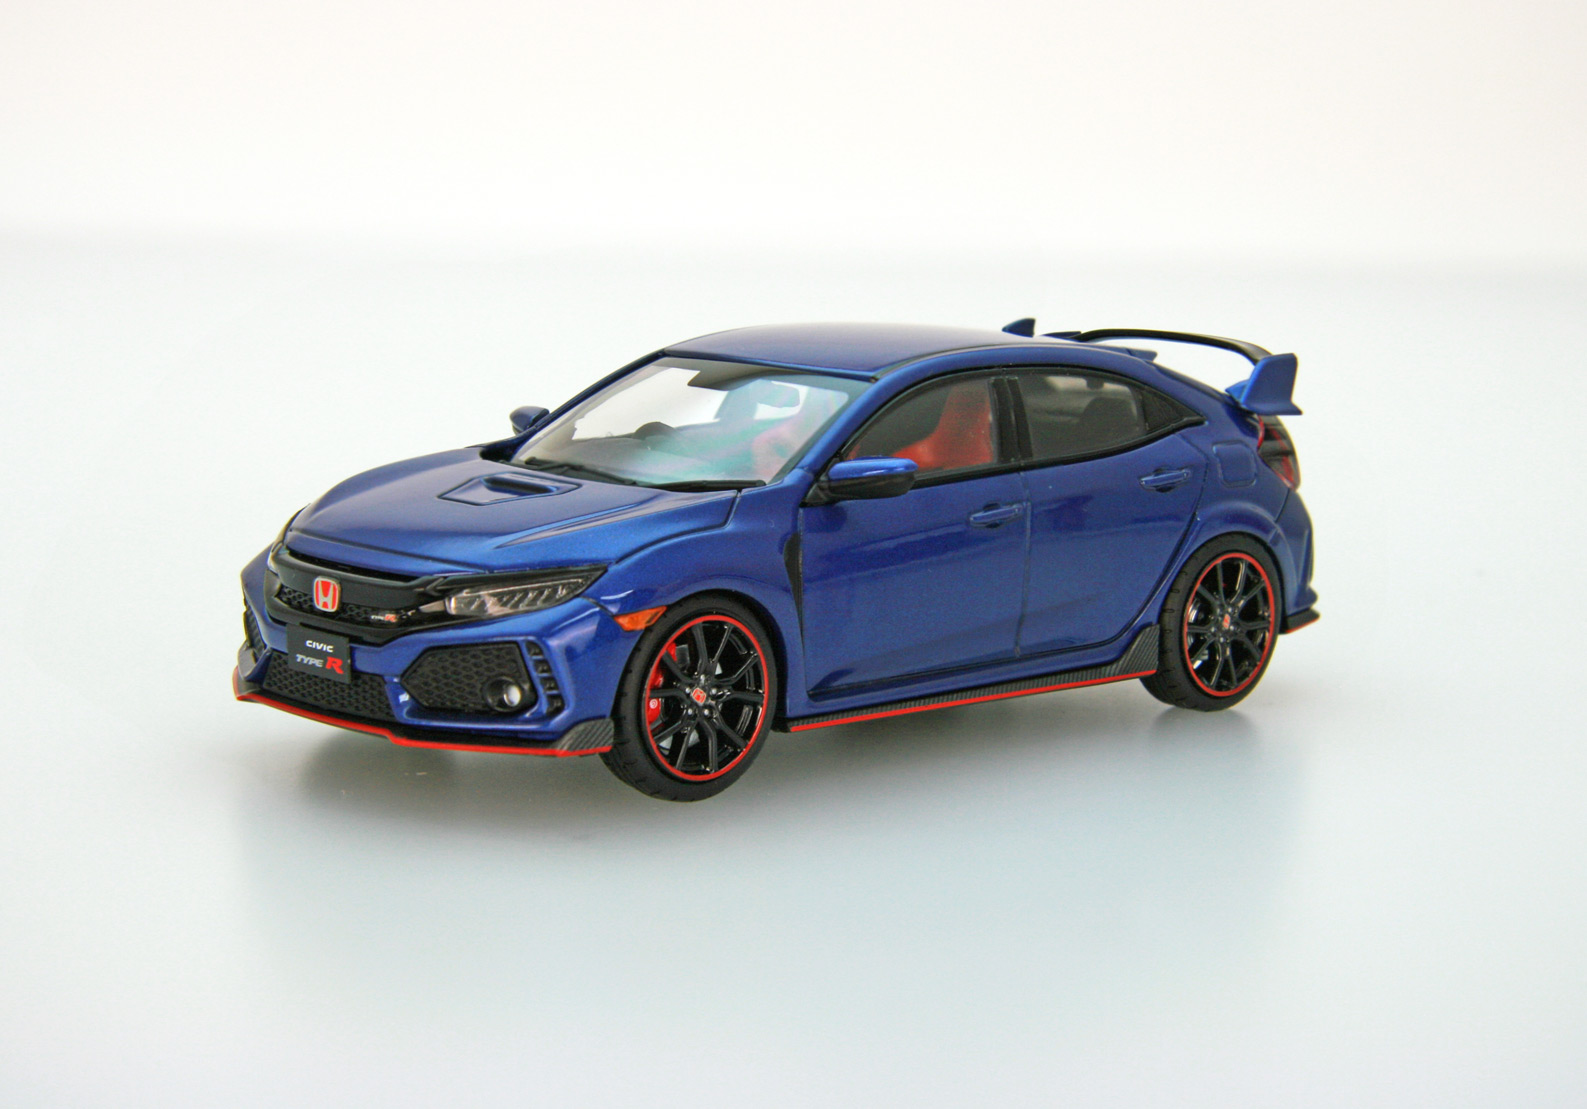 【45575】Honda CIVIC TYPE R 2017 (Brilliant Sporty Blue Metallic)